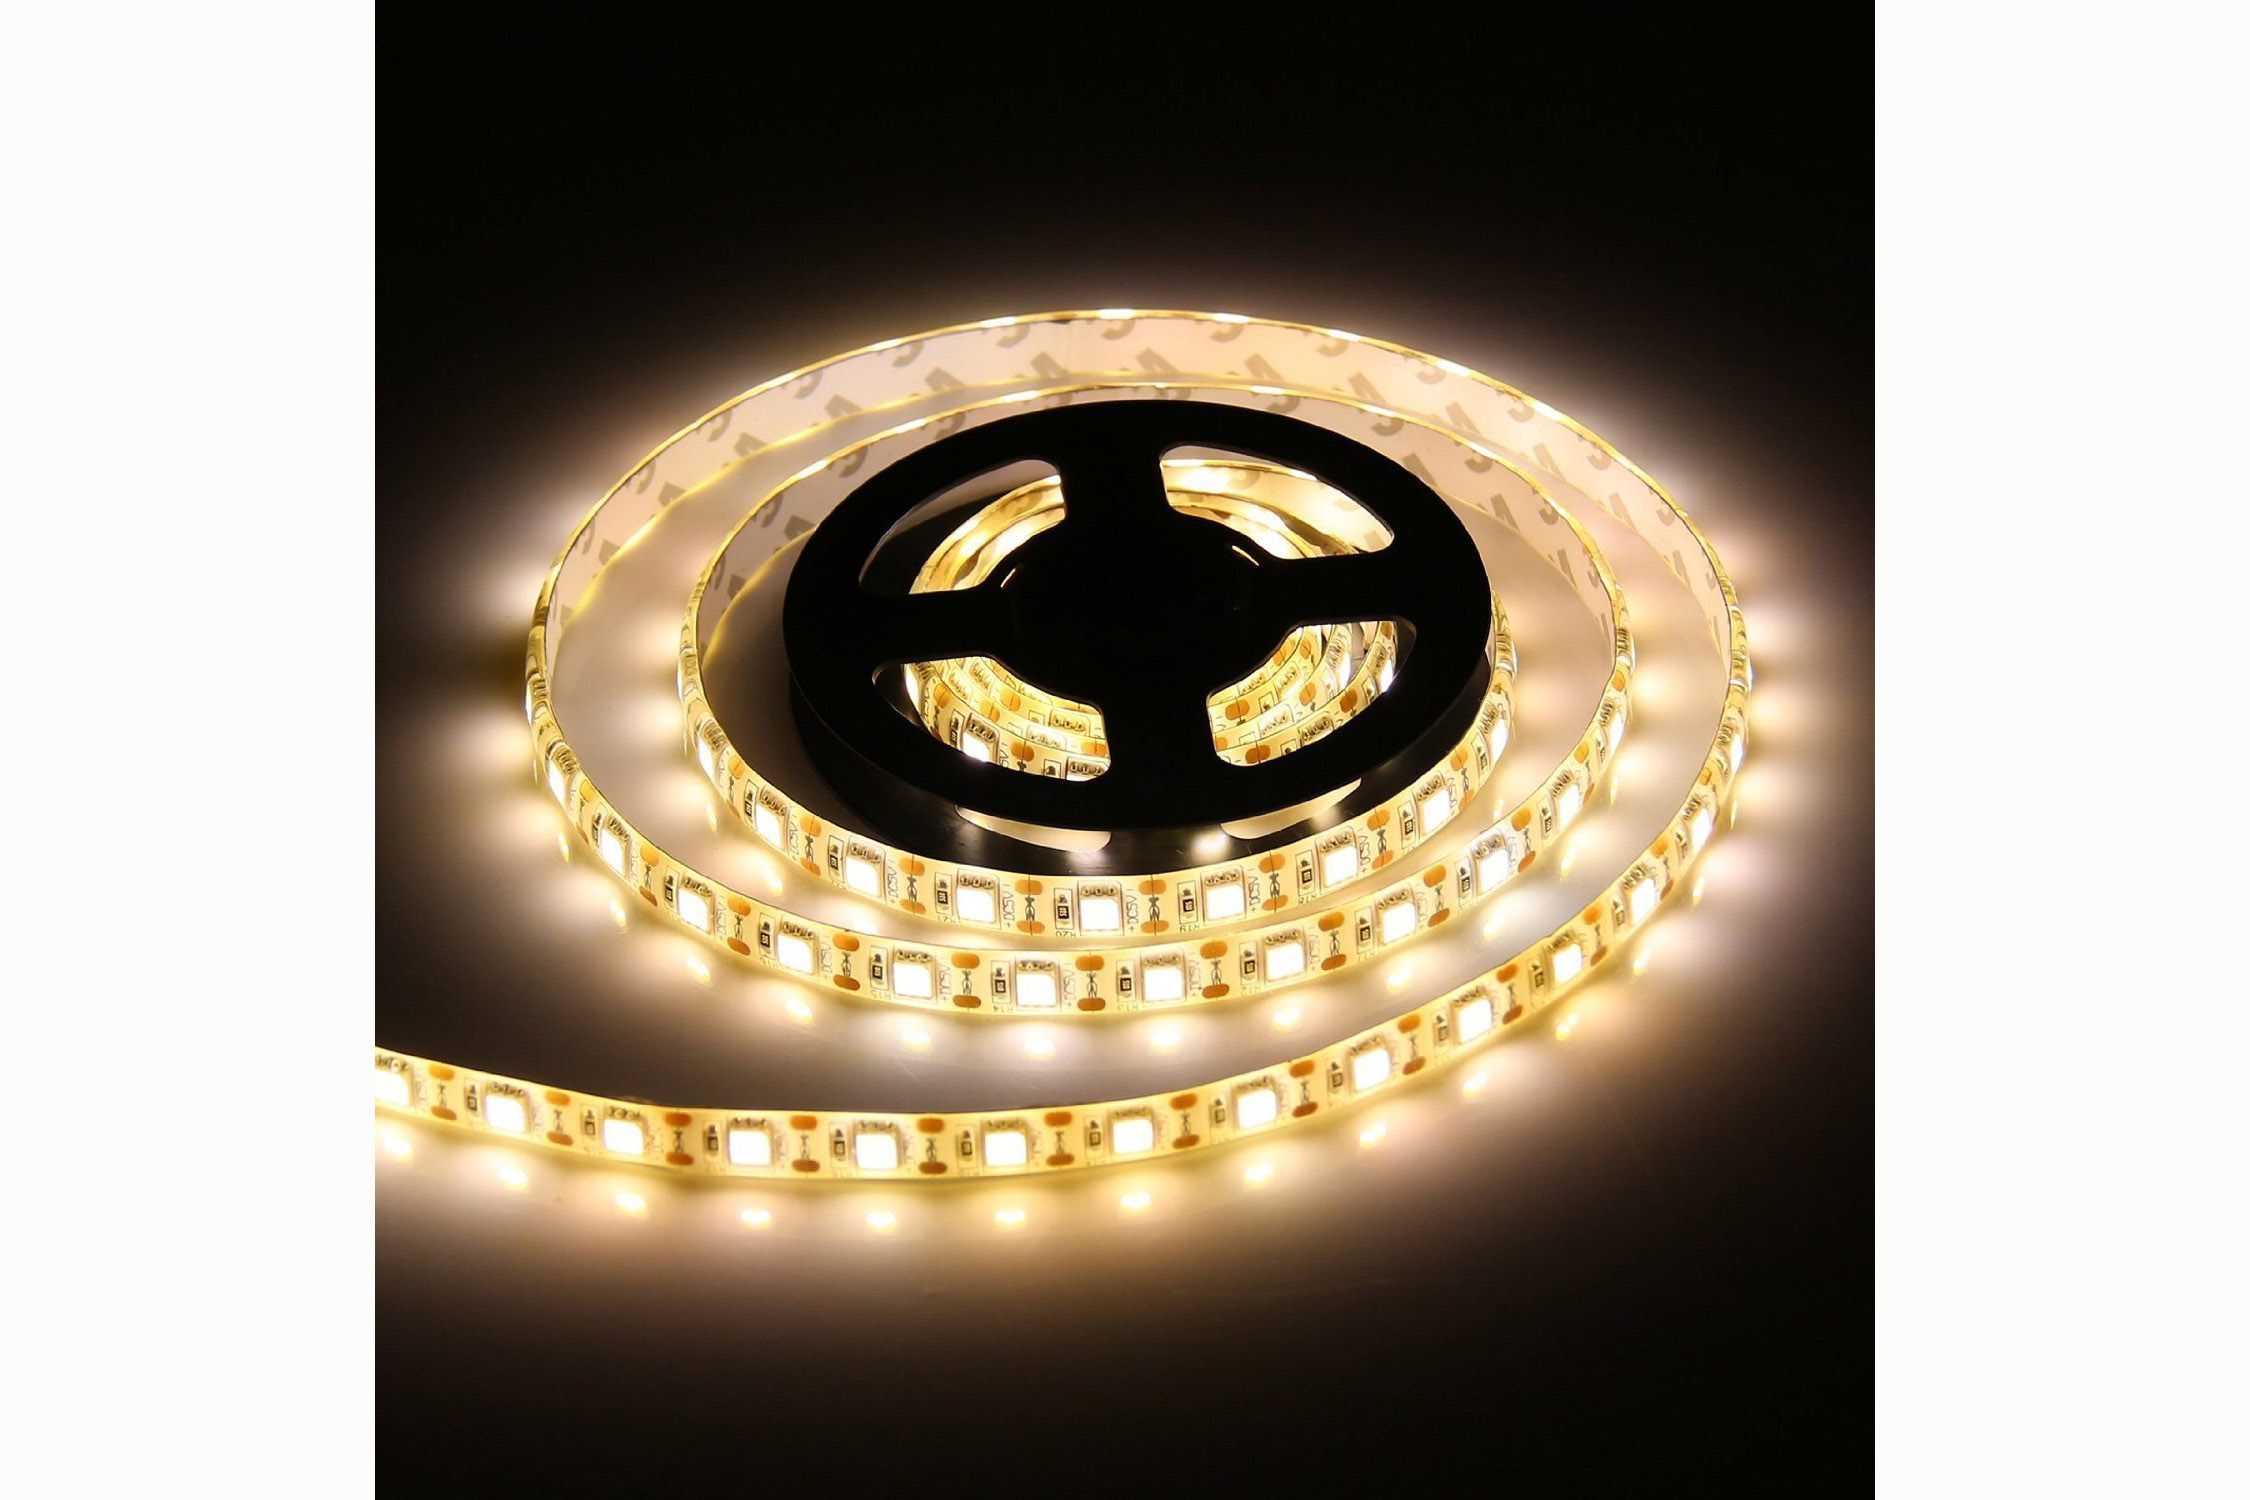 6 Ft Ribbon of LEDs, Water Proof, 3 Colors - 4.5 stars - $10 (Prime)